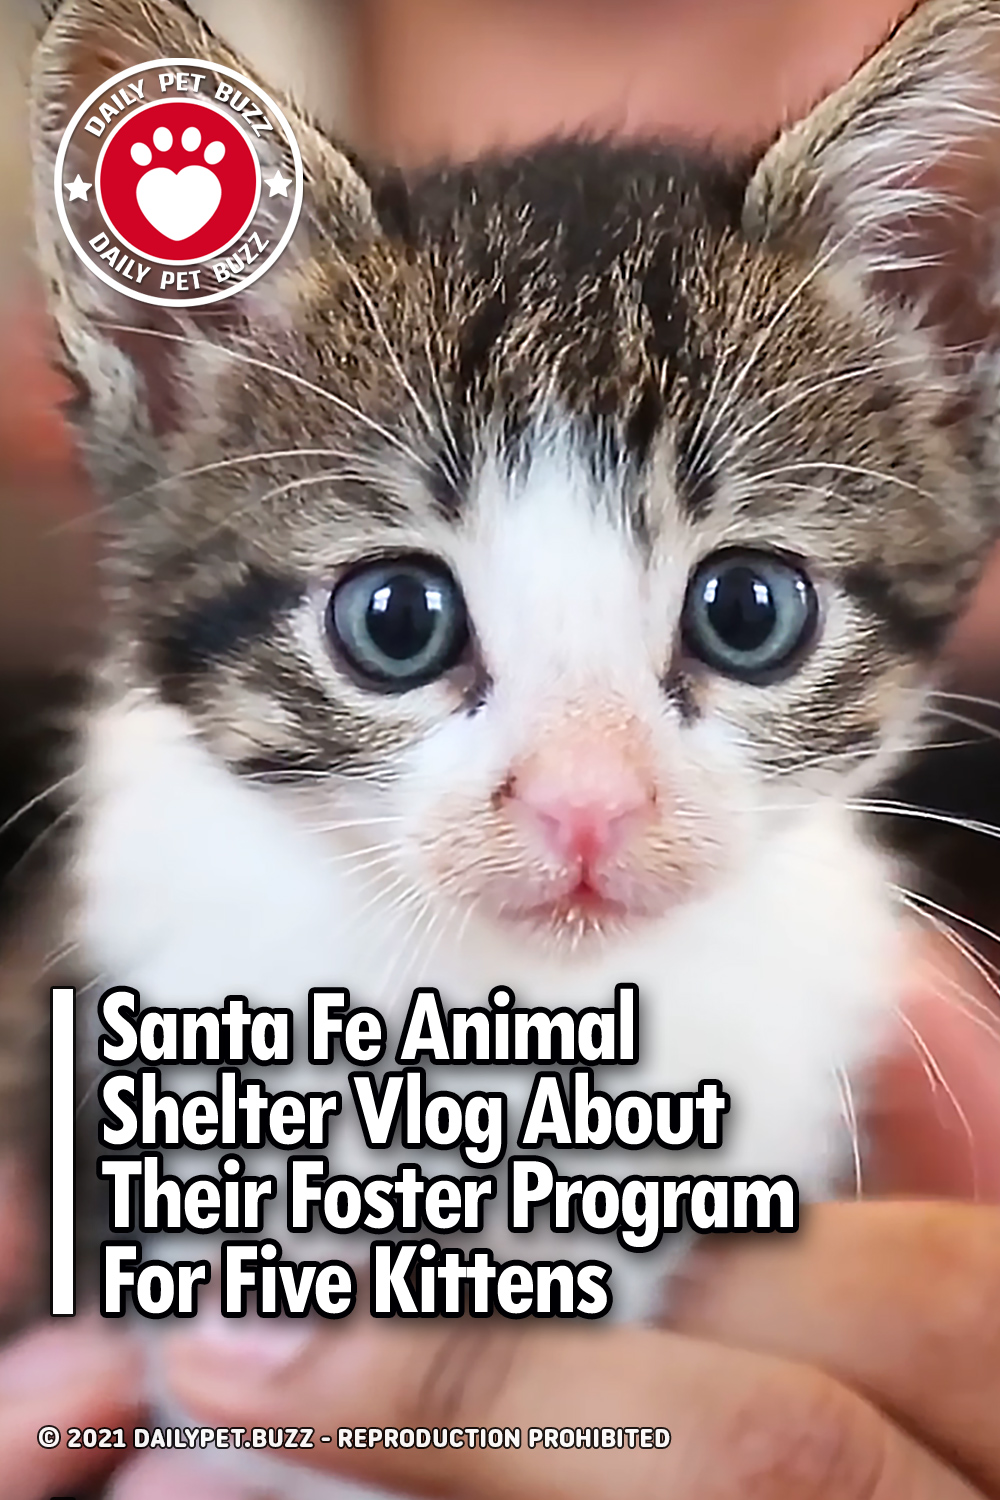 Santa Fe Animal Shelter Vlog About Their Foster Program For Five Kittens